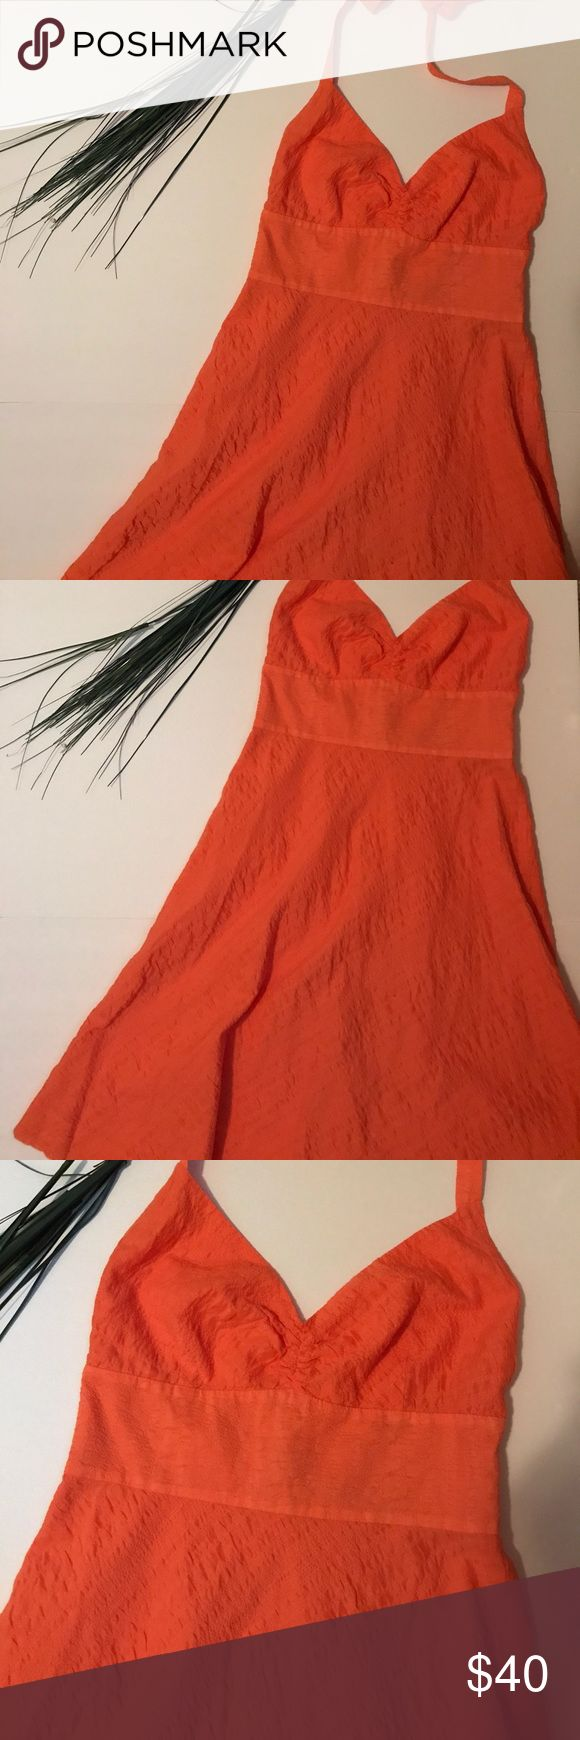 "J. Crew Halter Embossed Orange Beach Dress Beautiful J. Crew Halter orange/peach colored dress. 36"" long and 11 & 1/2"" under the bust. Halter strap is adjustable and it zips up the back. Material is 100% Cotton J. Crew Dresses Midi"